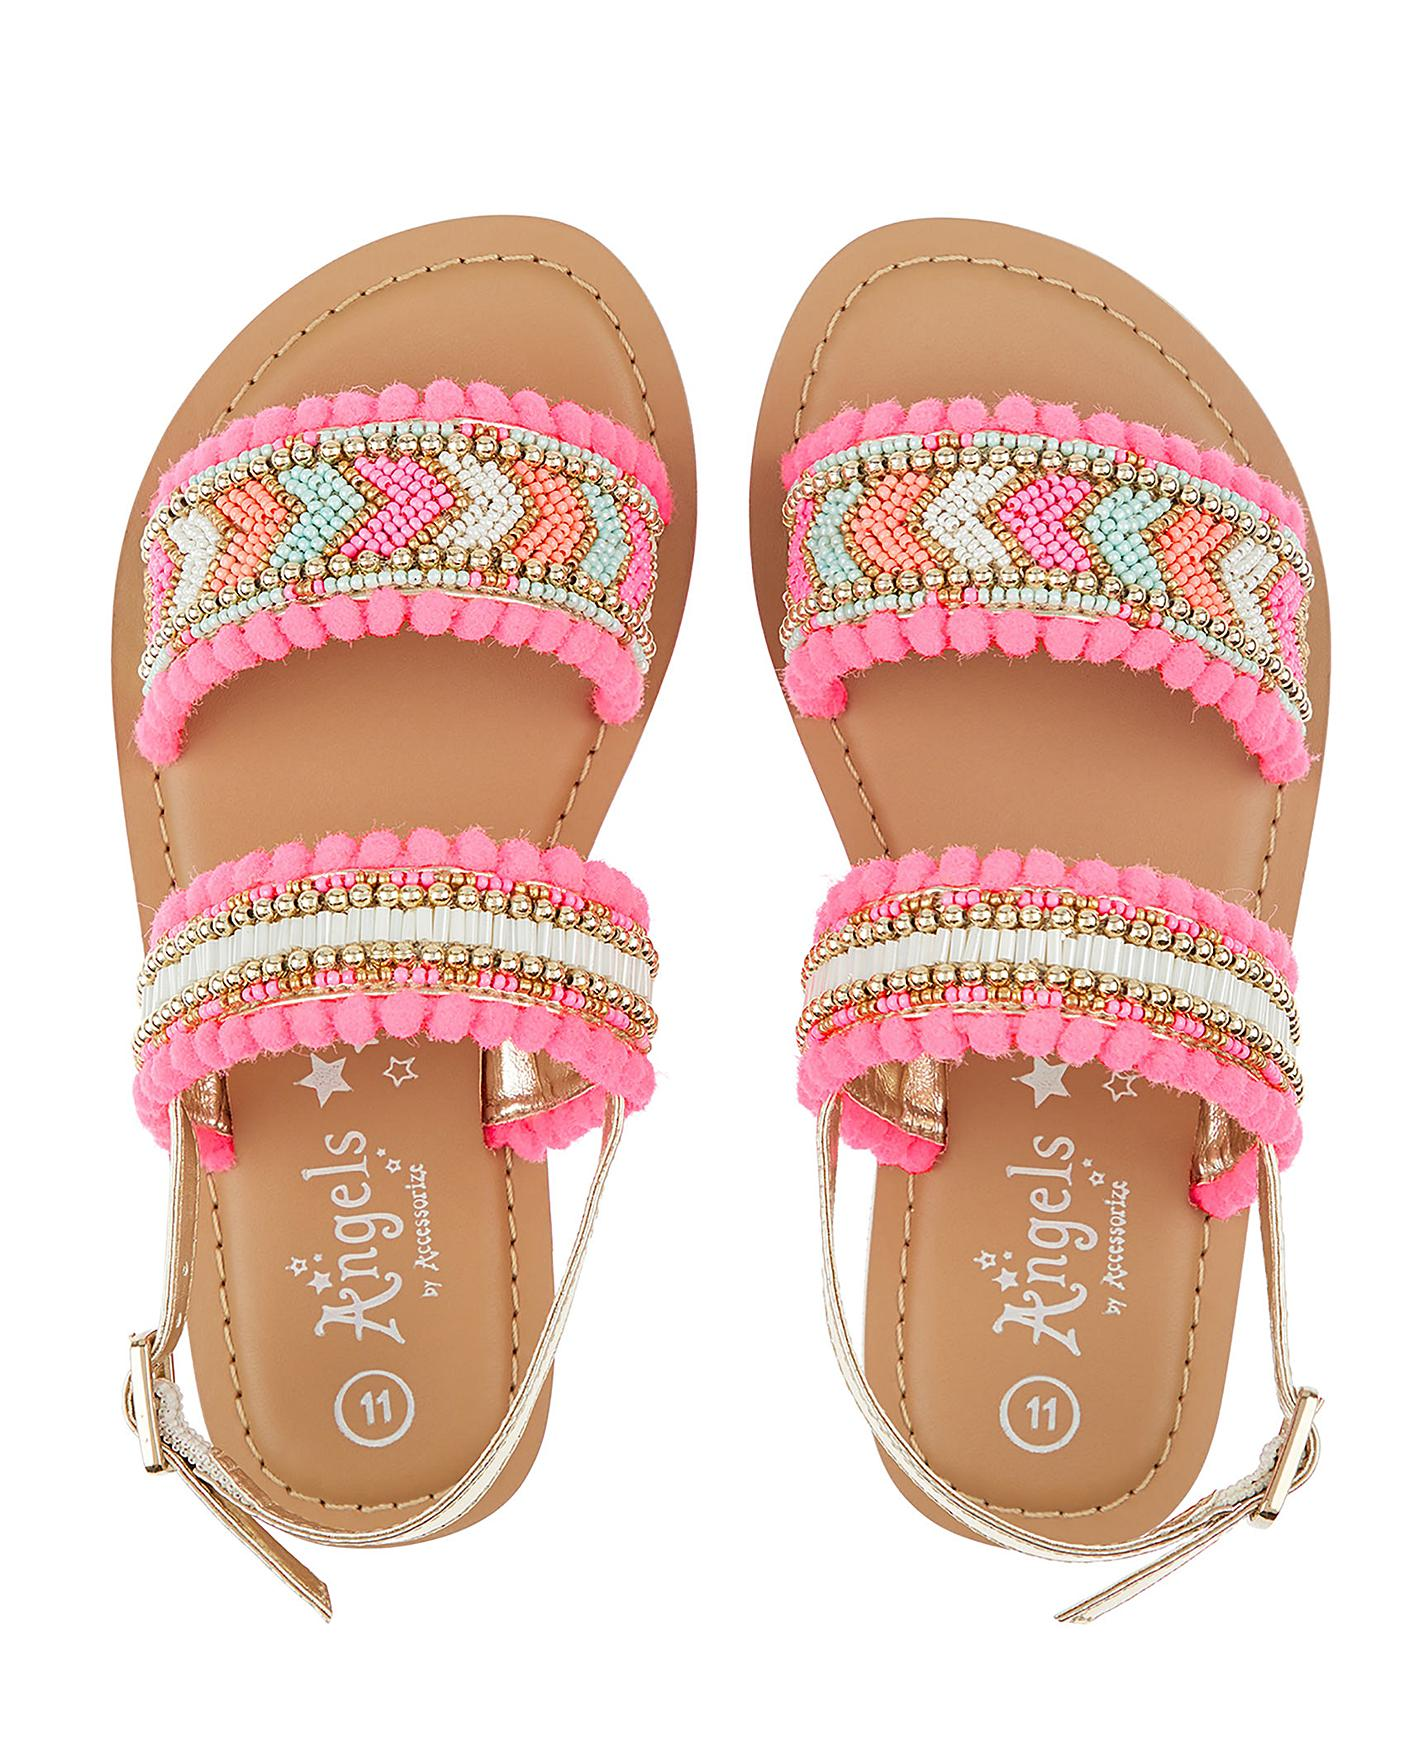 479b33310 Description. This item is despatched direct from the supplier. Accessorize Santorini  Beaded Pom Sandal ...